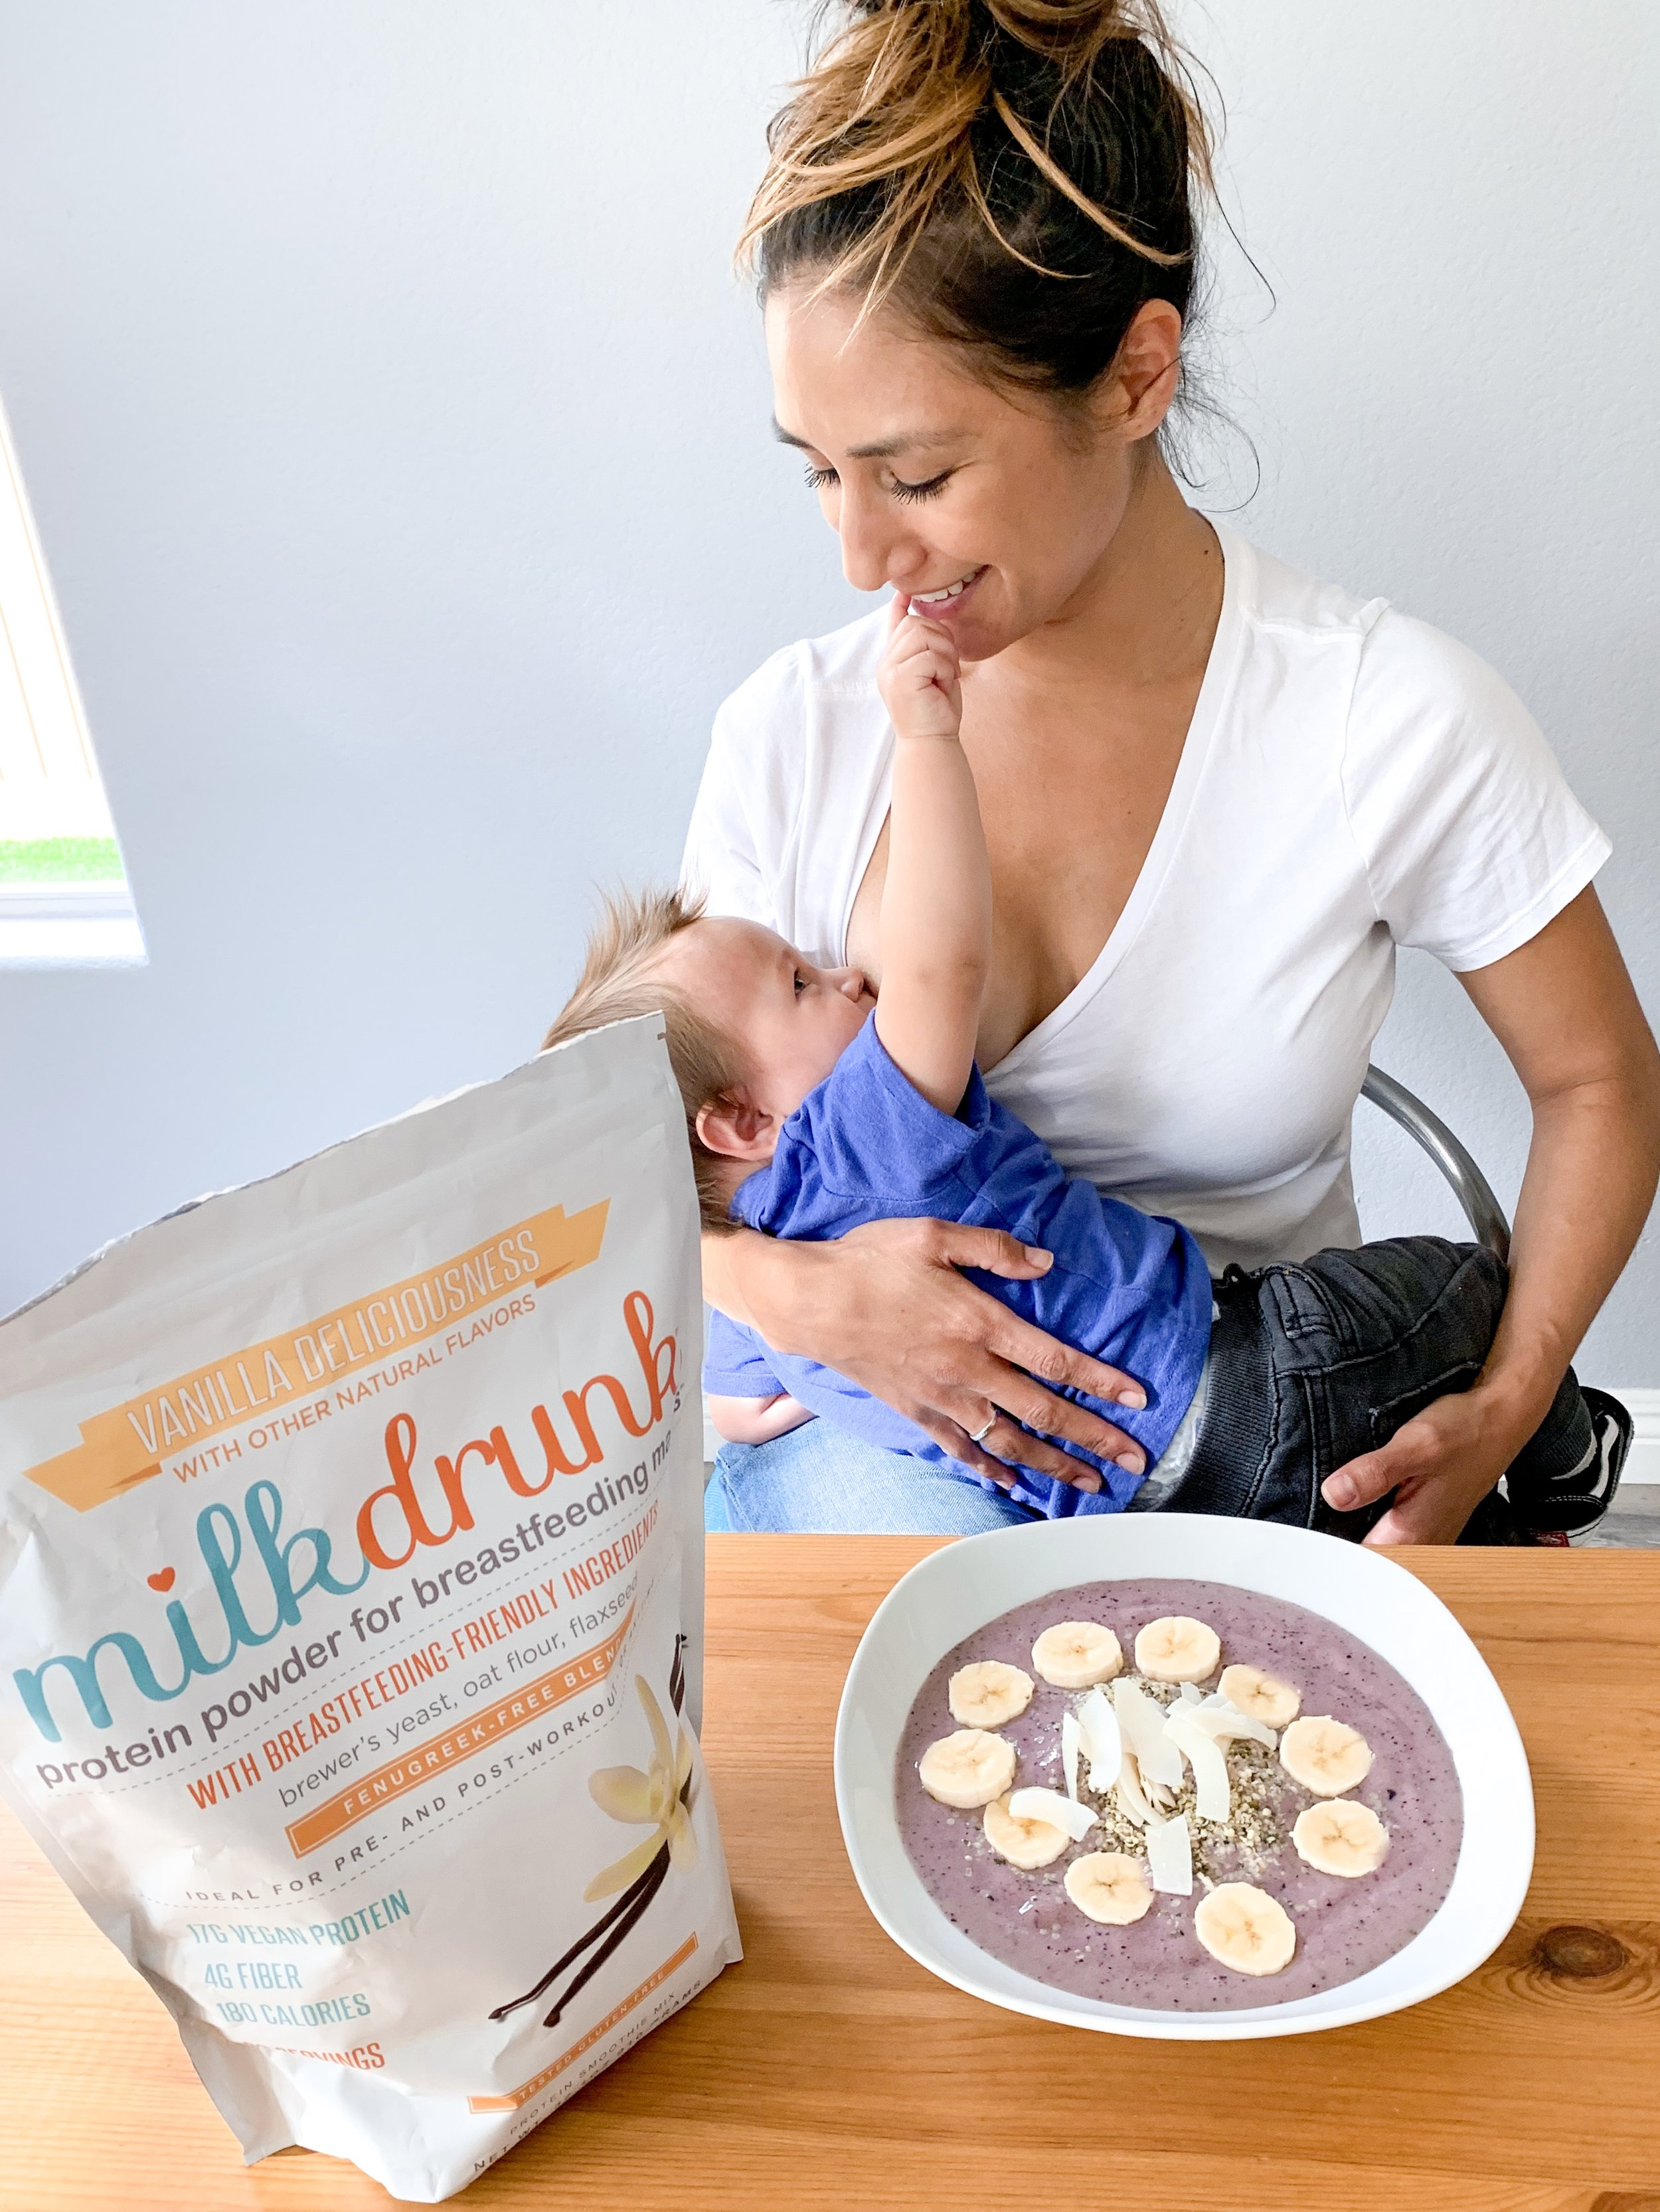 Recipe for a berry veggie smoothie bowl made with a protein powder made for lactating mothers